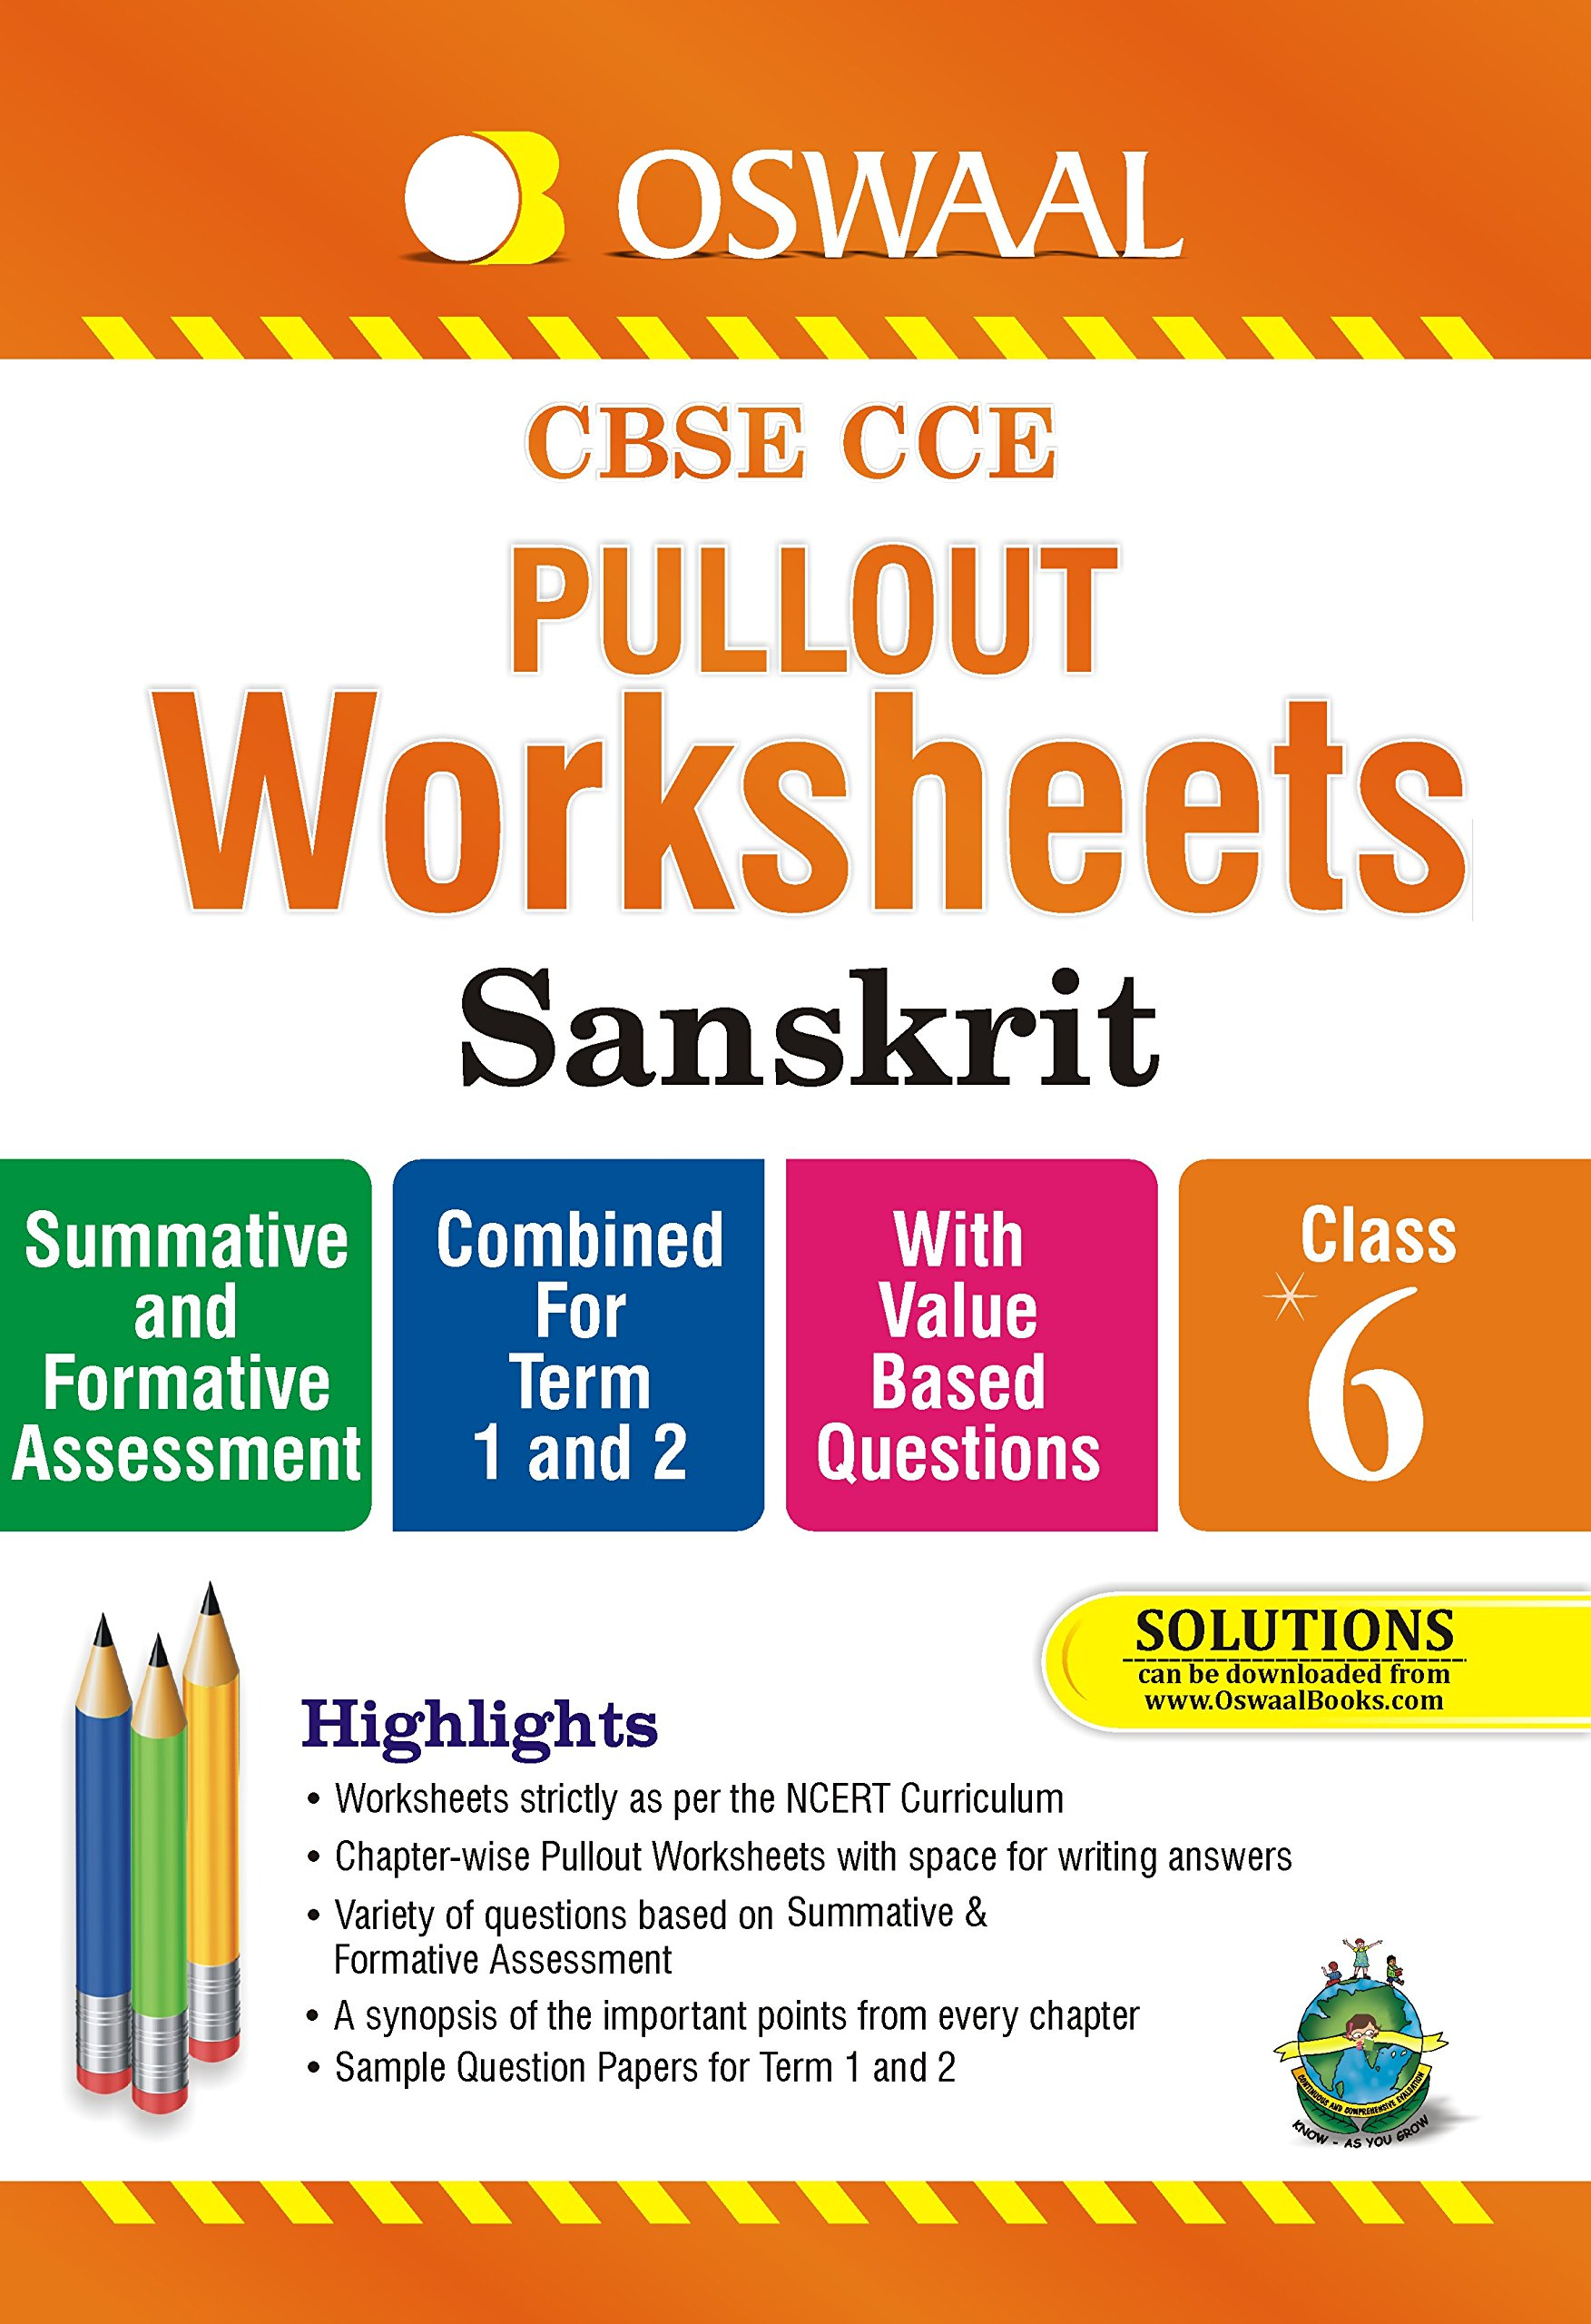 Oswaal CBSE CCE Pullout Worksheets Sanskrit for Class 6 Old Edition ...